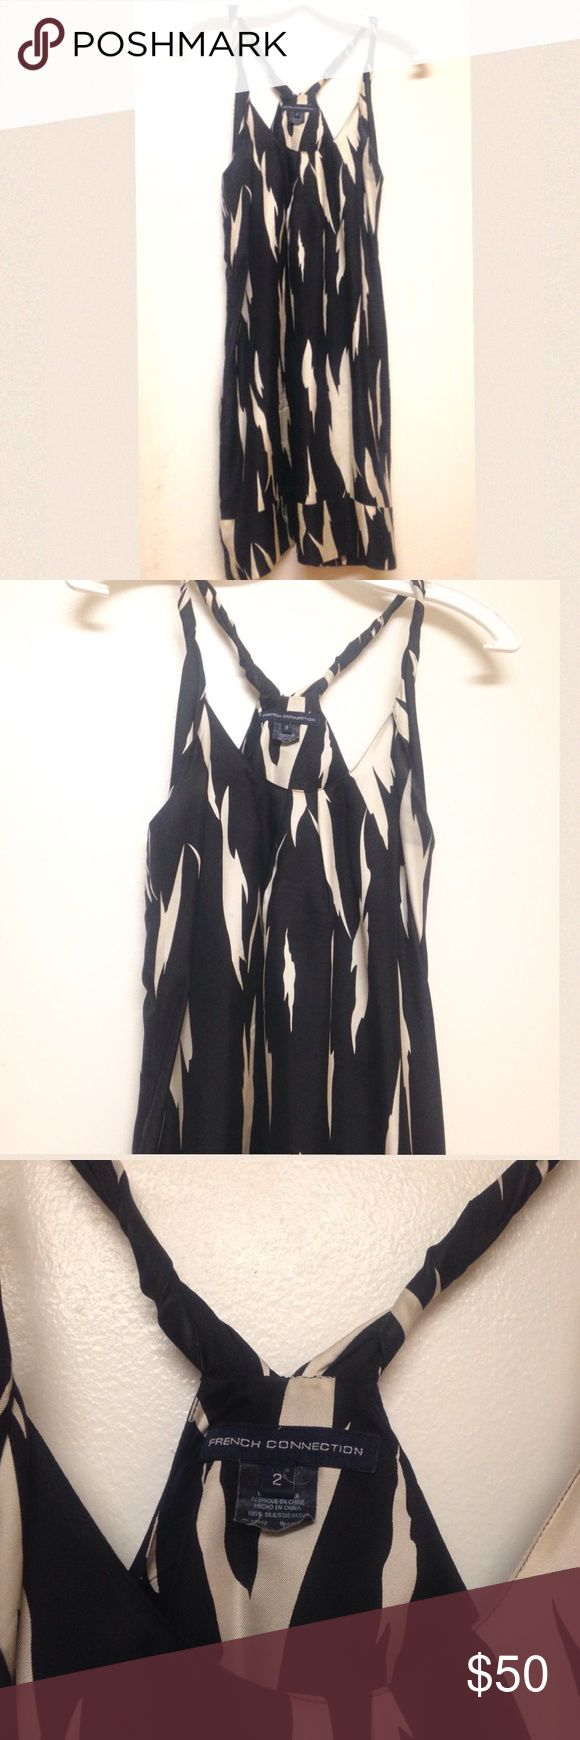 French connection animal print cocktail dress Black and white animal print above-the-knee address. 100% silk. Never worn, no tags. A great feature is the hidden pockets on both sides. NO RETURNS! -Please ask all questions before purchase. I will answer honestly and accommodate almost any request. ** free gift with every shipment! ** ❤️ French Connection Dresses Midi